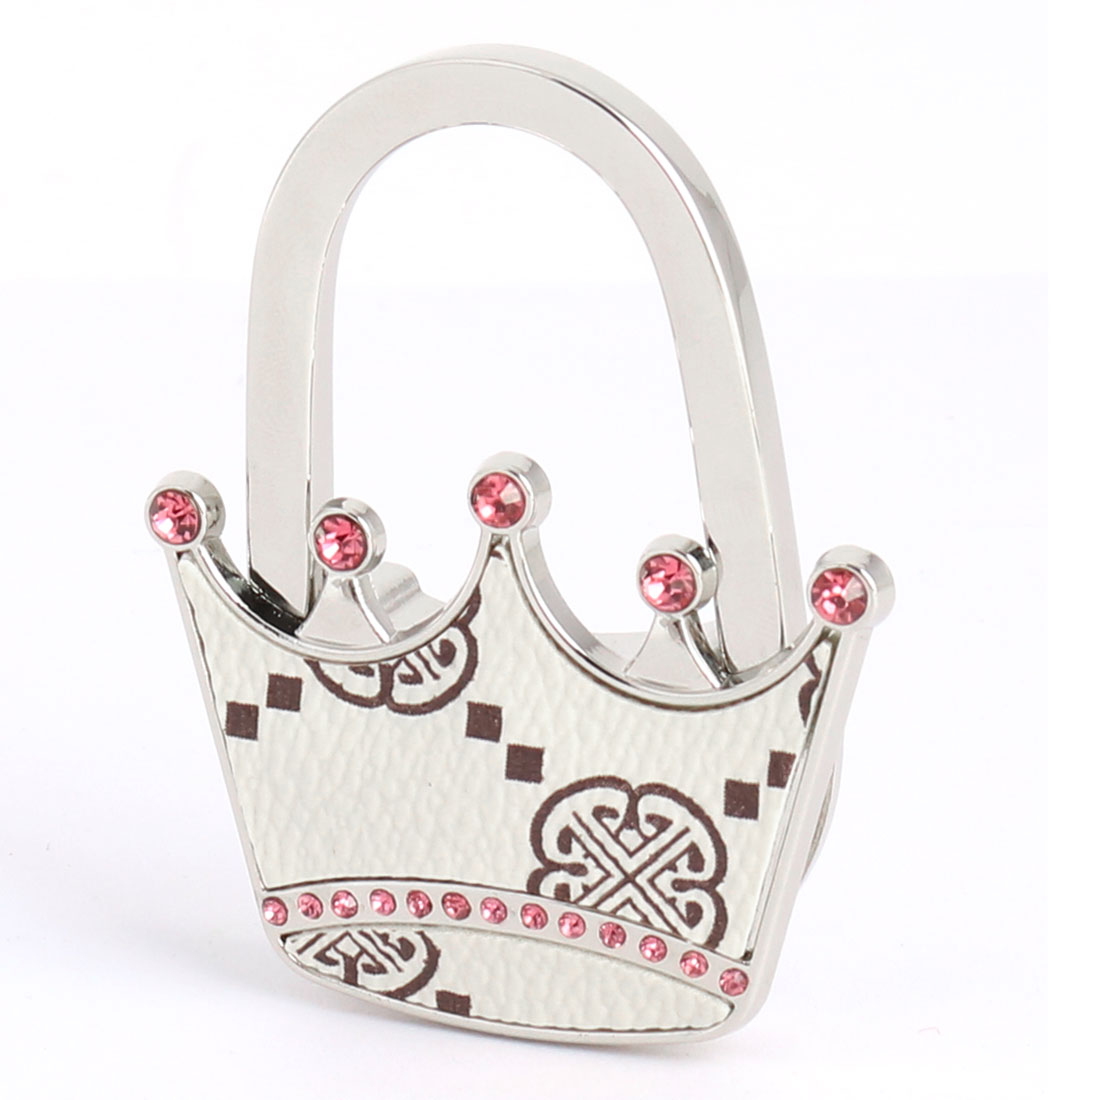 Outdoor Picnic Shopping Crown Shape Rhinestone Decor Handbag Hook Bag Hanger